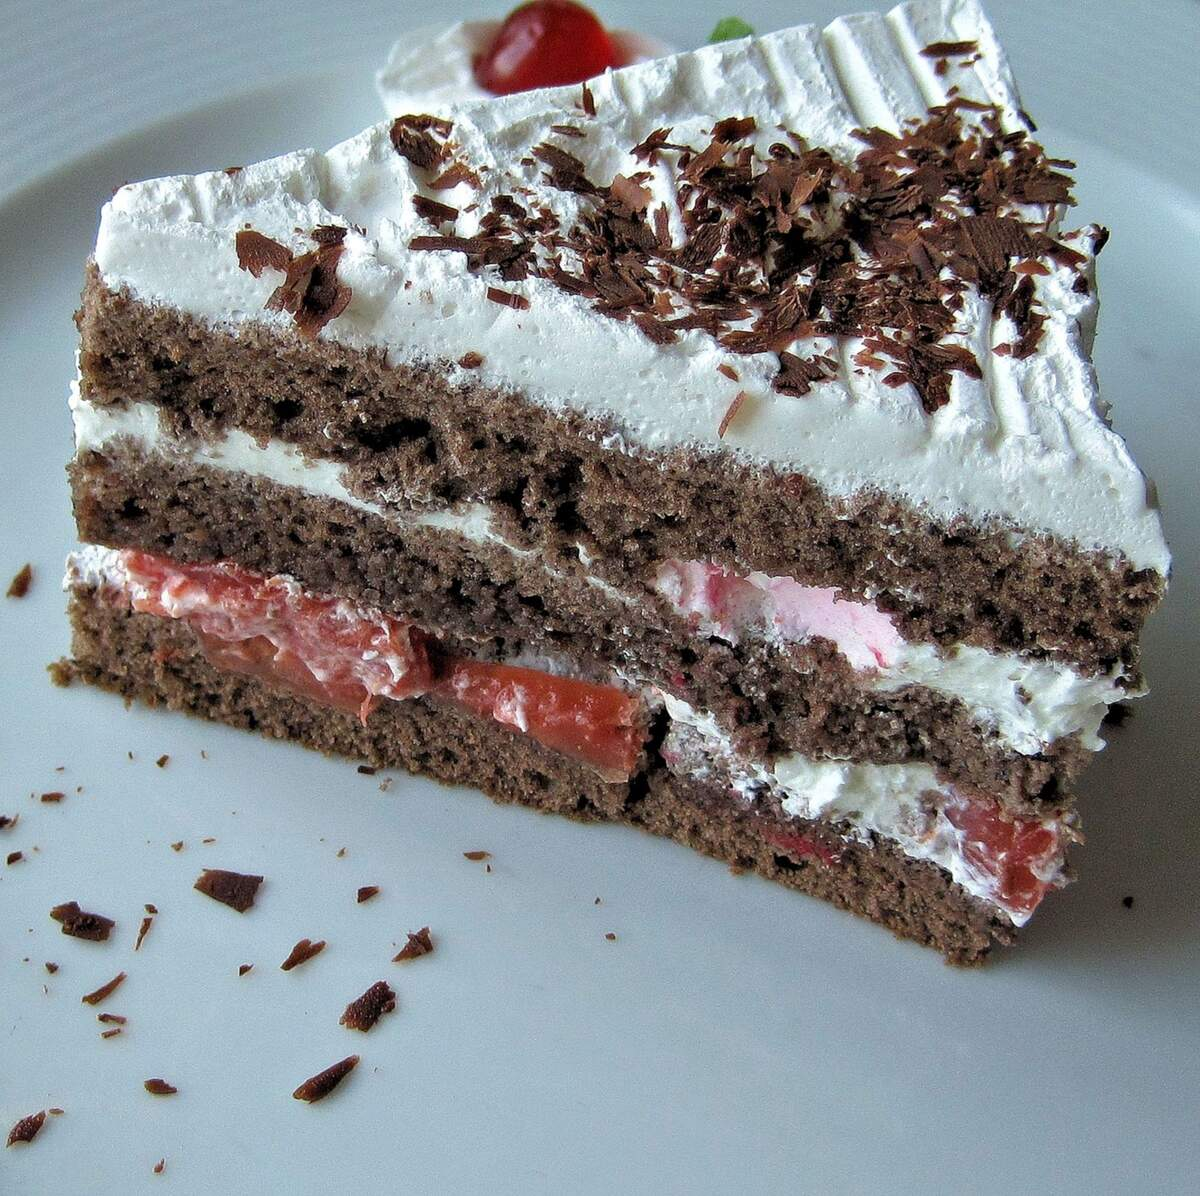 Image for National Black Forest Cake Day